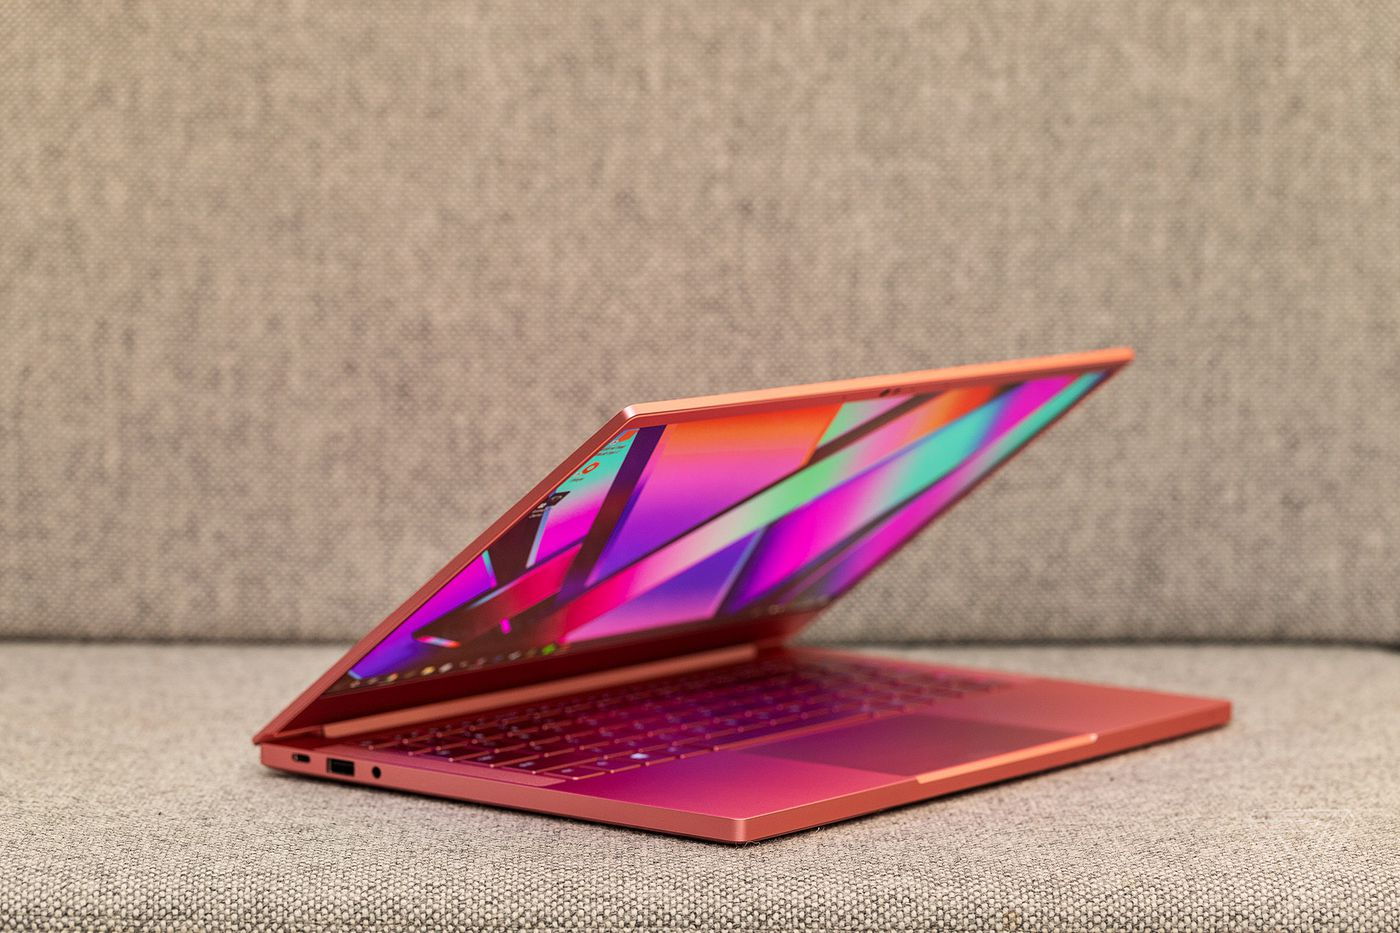 Razer Blade Stealth (2019) review: the cost of compromise